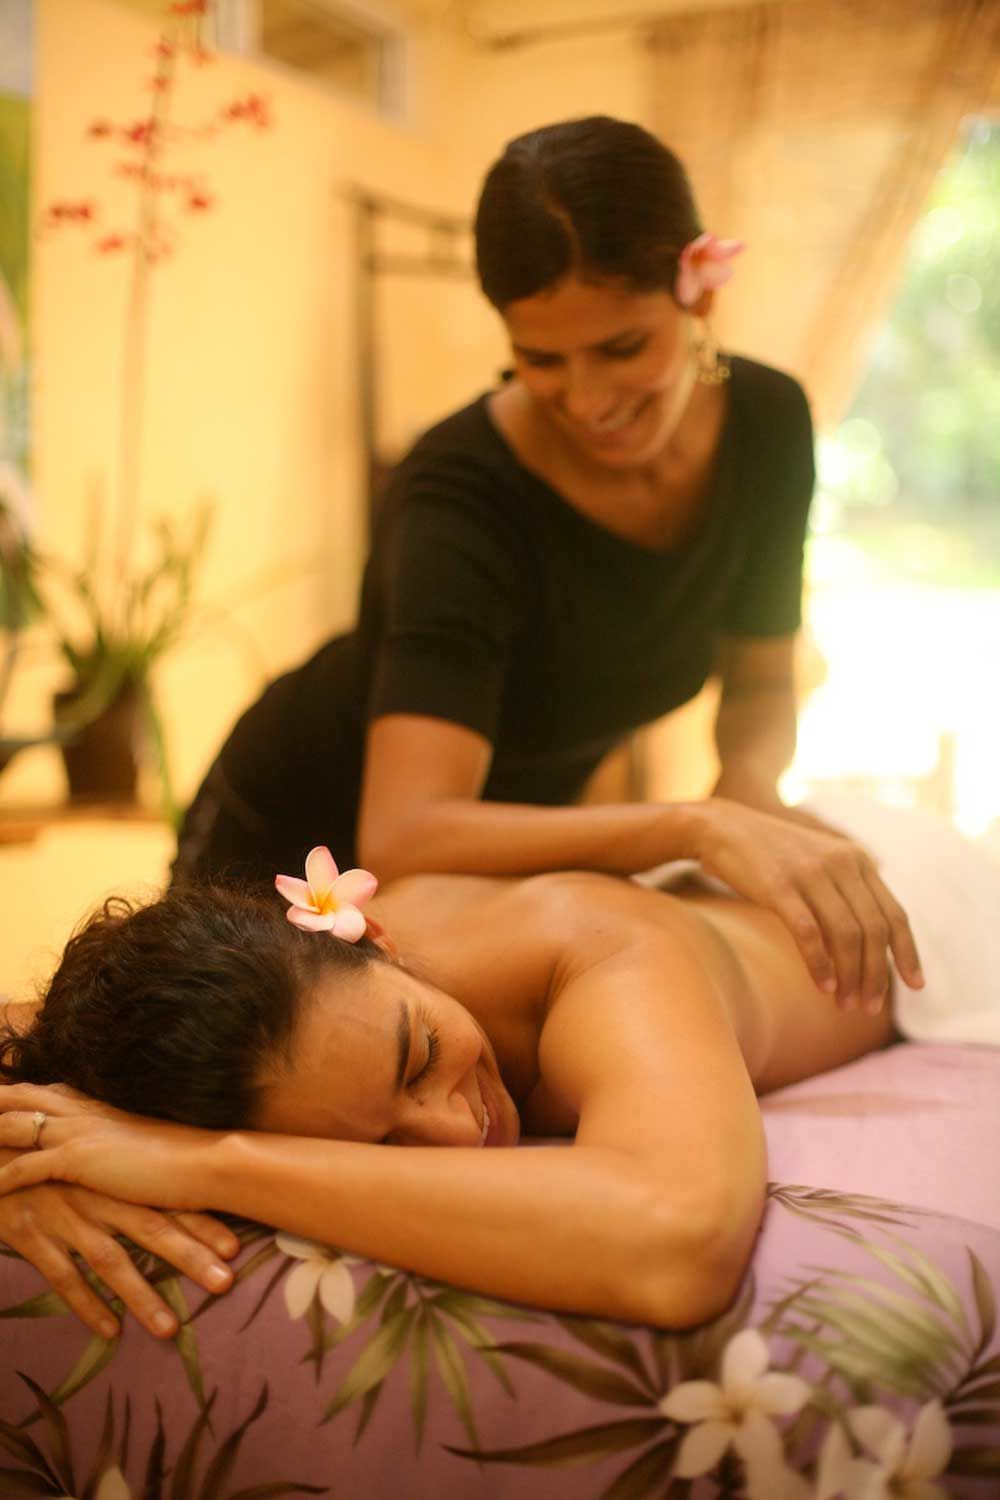 Massage,-Spa,-Maui,-Lomi-Lomi,,-Hawaiian-Healing,-Day-Spa,-Lomi-Lomi-Training,--Spa-1retreat,-Healing,-Wellness